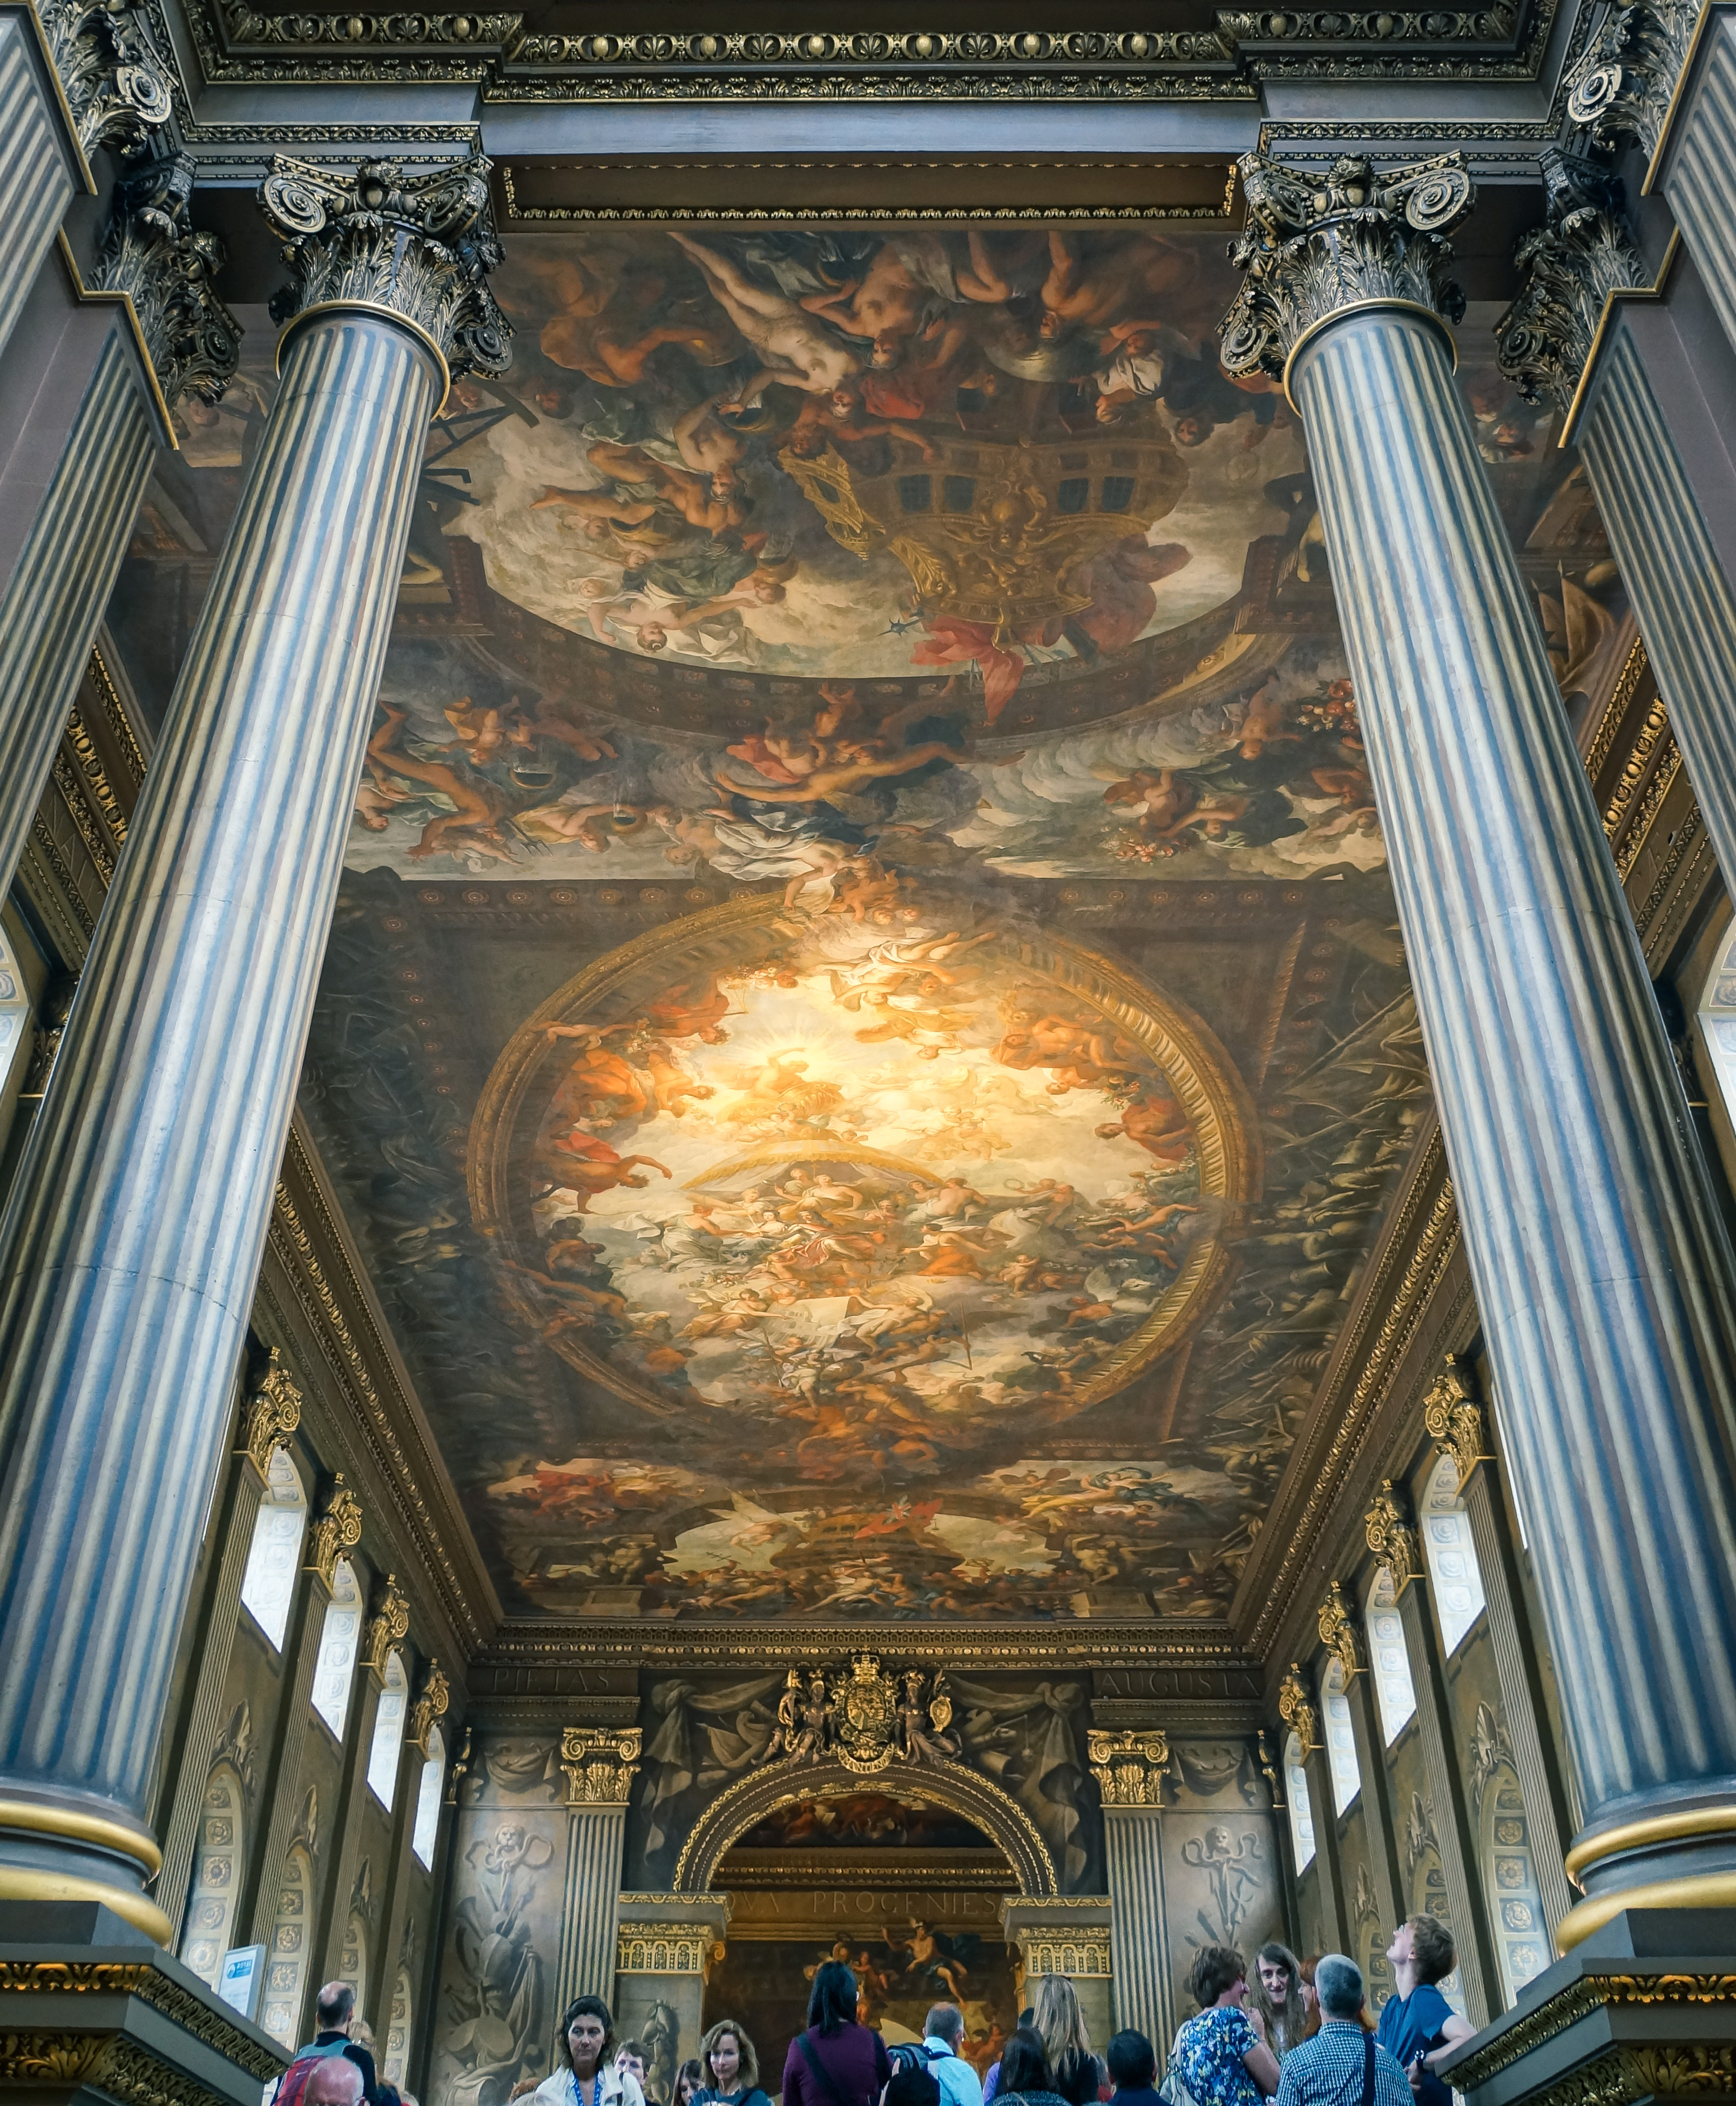 London Alert: The Painted Hall in Greenwich is Closing for 6 Months